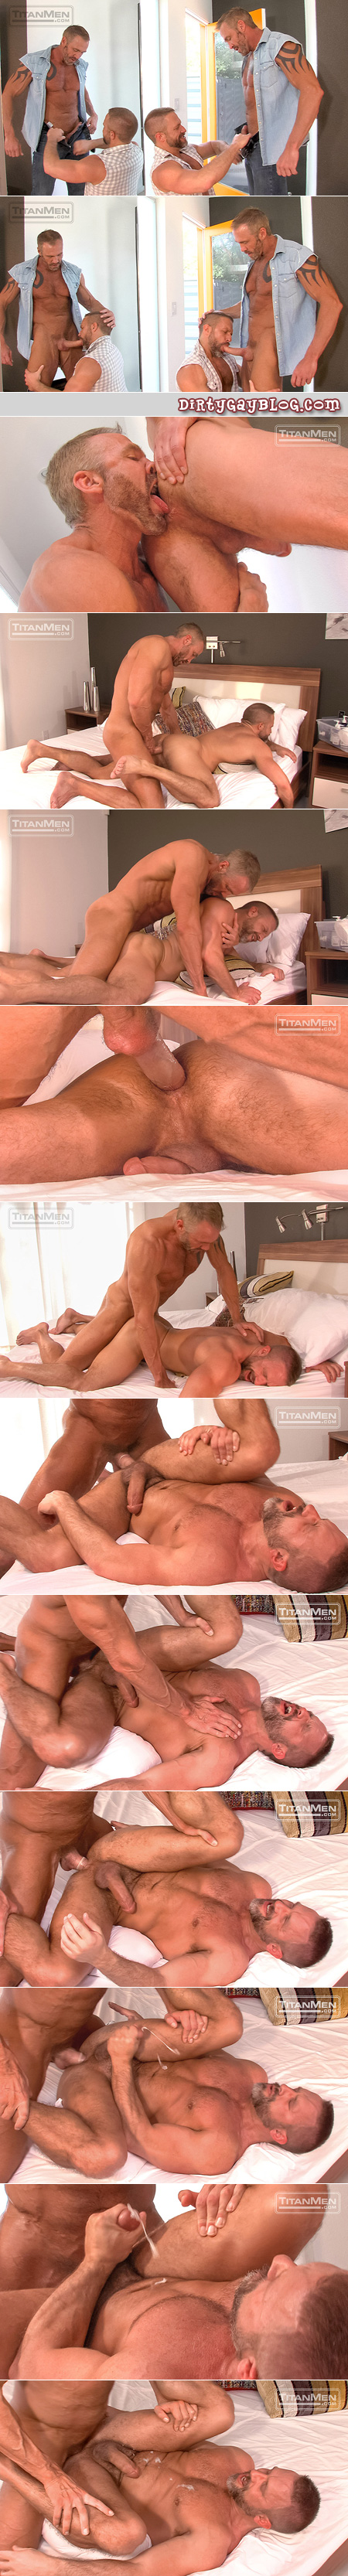 Hung muscle Daddies flip-fucking with their big dicks.